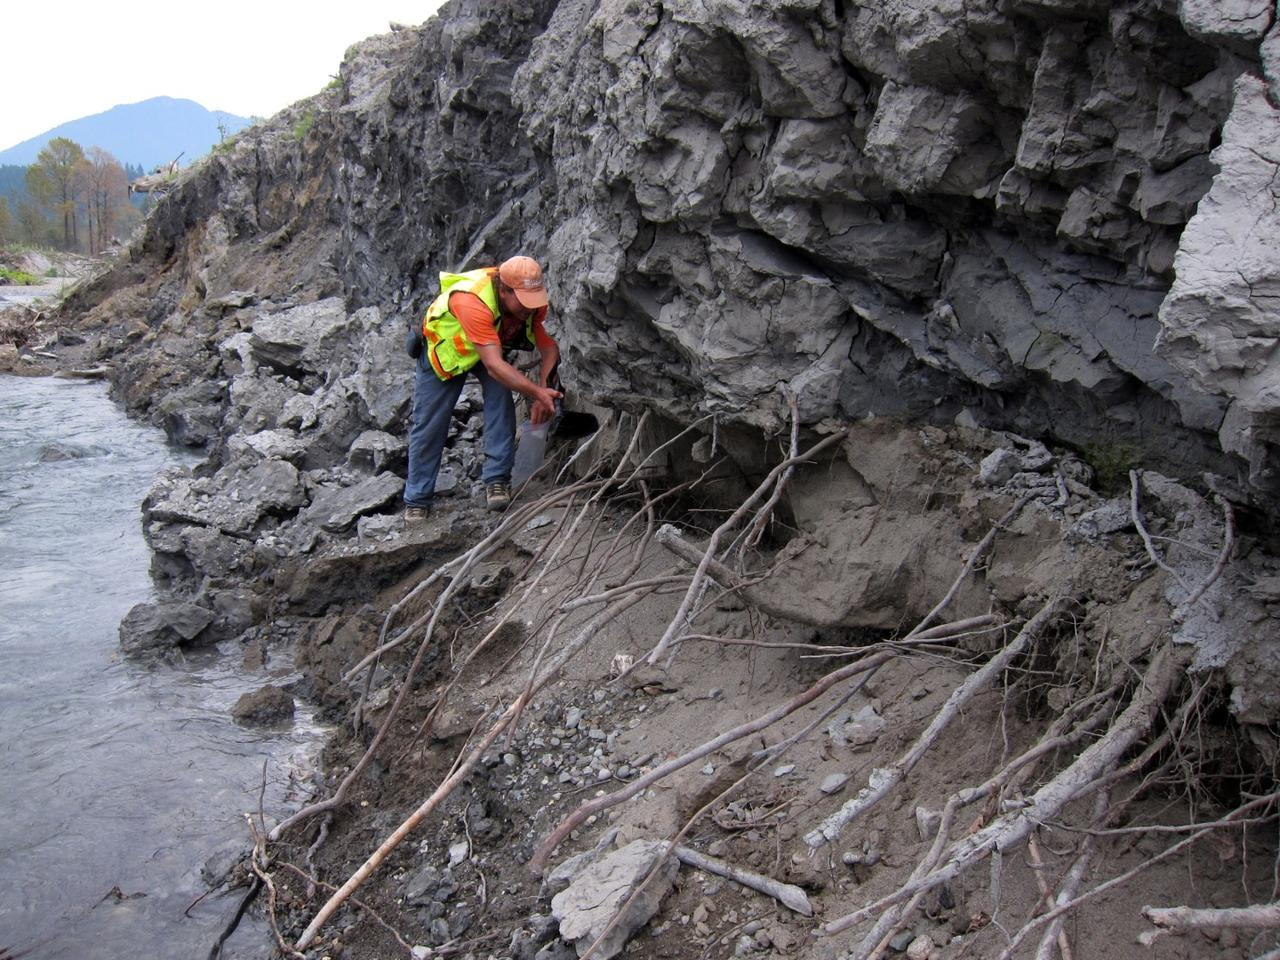 US Geological Survey civil engineer Brian Collins examines gray clay deposits overlying the brown sand that forms the underlying alluvial river valley